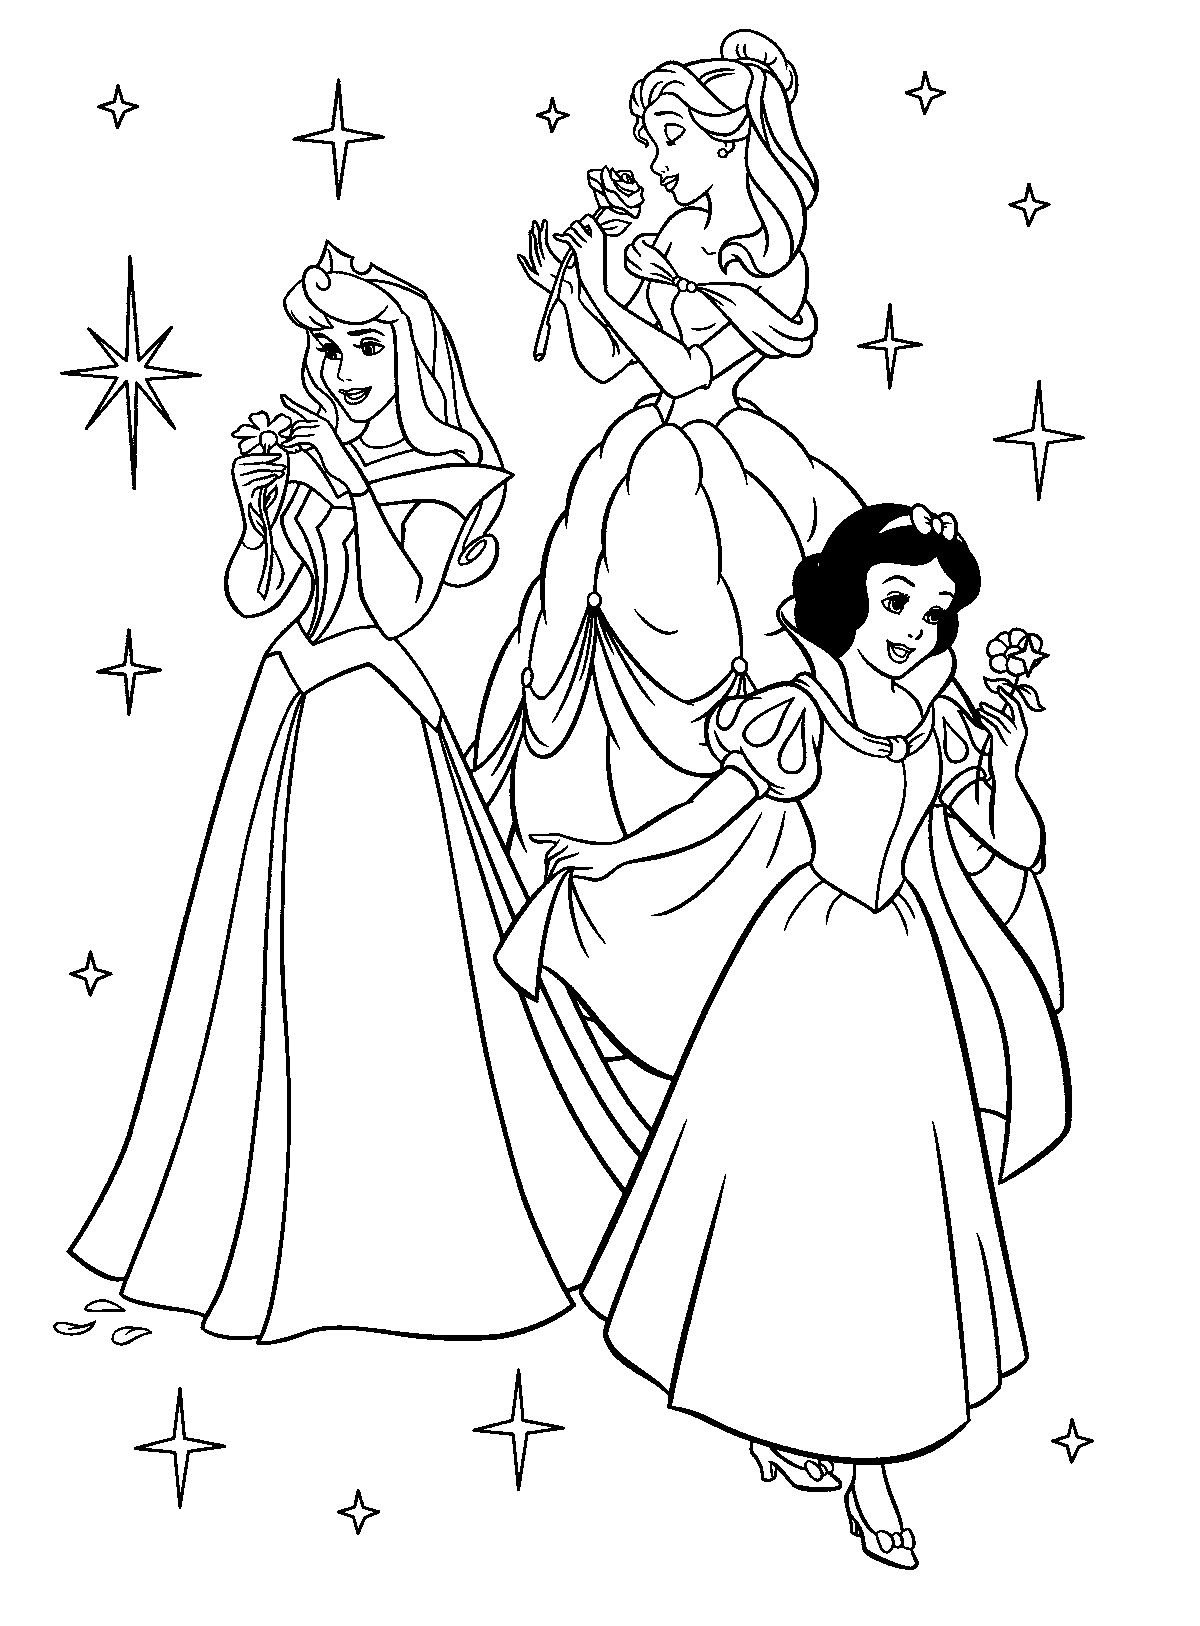 Free Printable Disney Princess Coloring Pages For Kids | Színezők - Free Printable Princess Coloring Pages